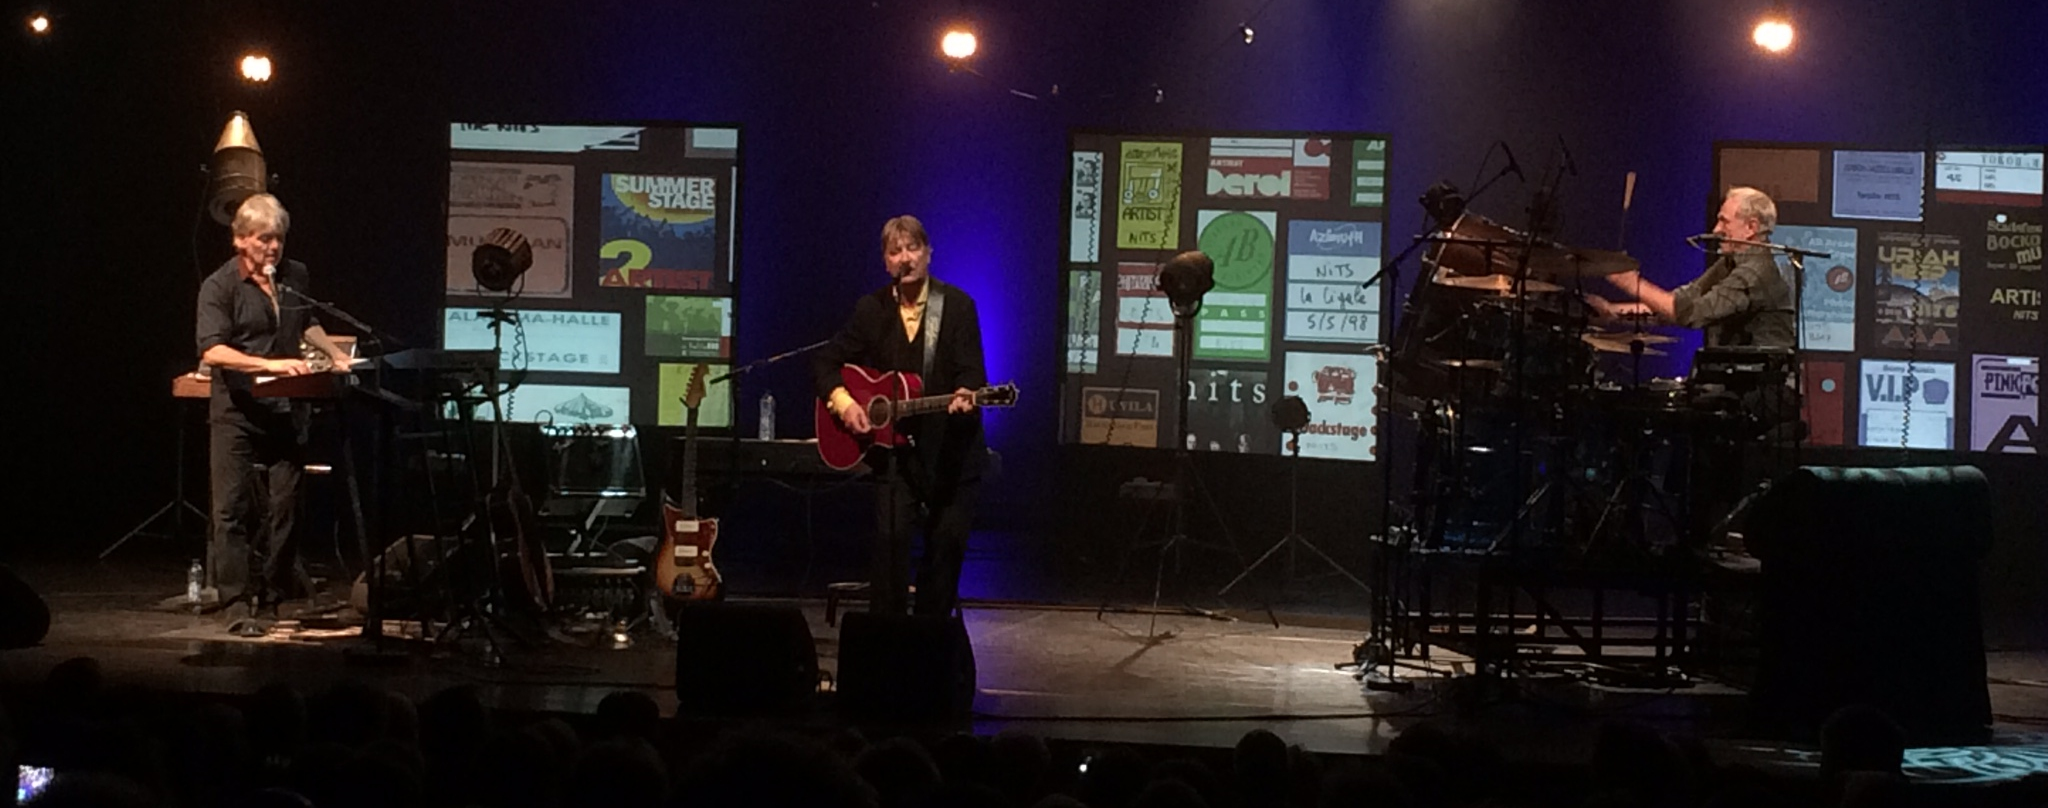 Concertreview: Nits? Nits!!!